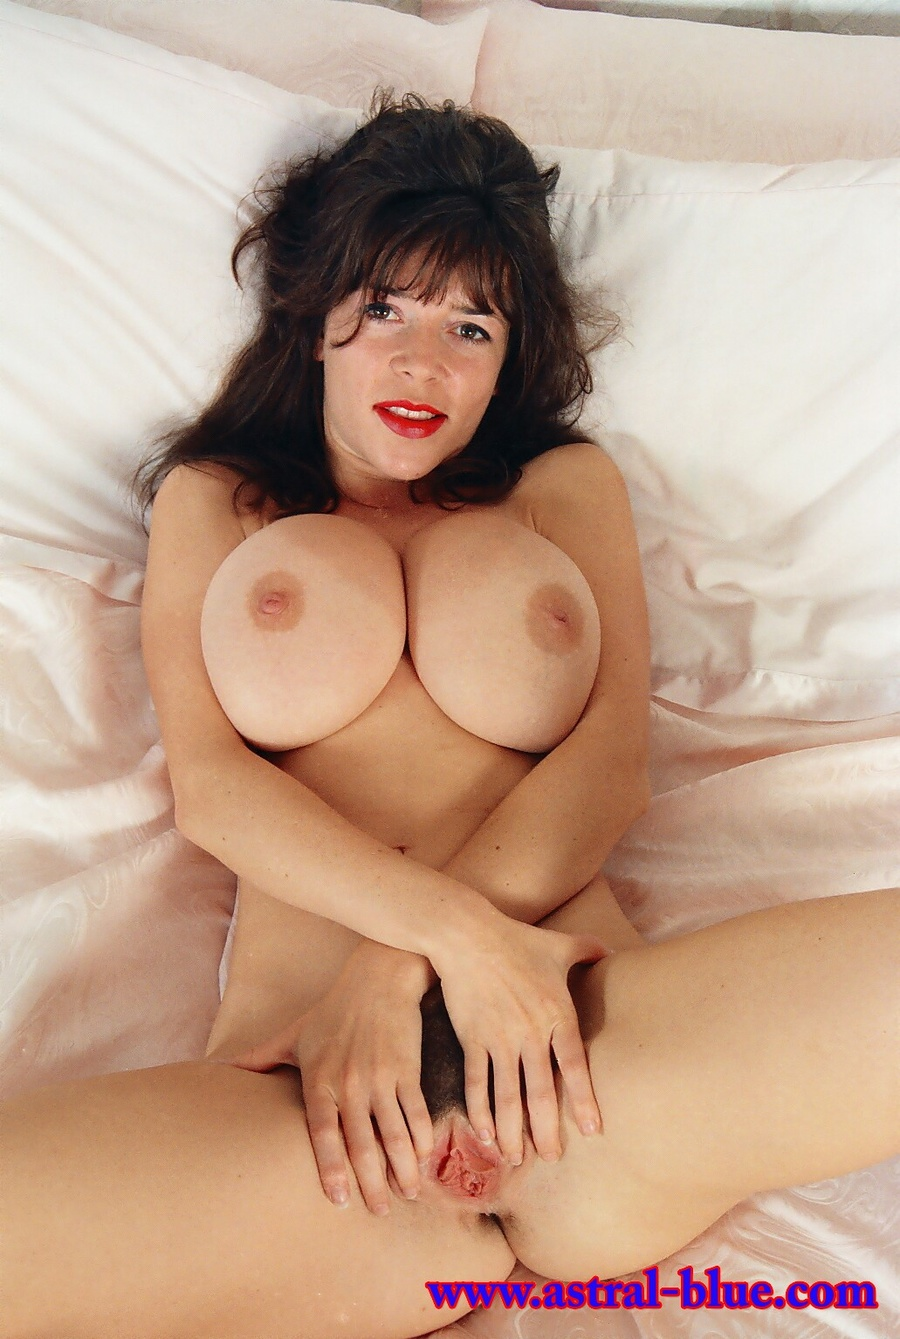 Diana Wynn, Big Tits Uk Page 3 Girl, Nude M - Xxx Dessert - Picture 10-4045